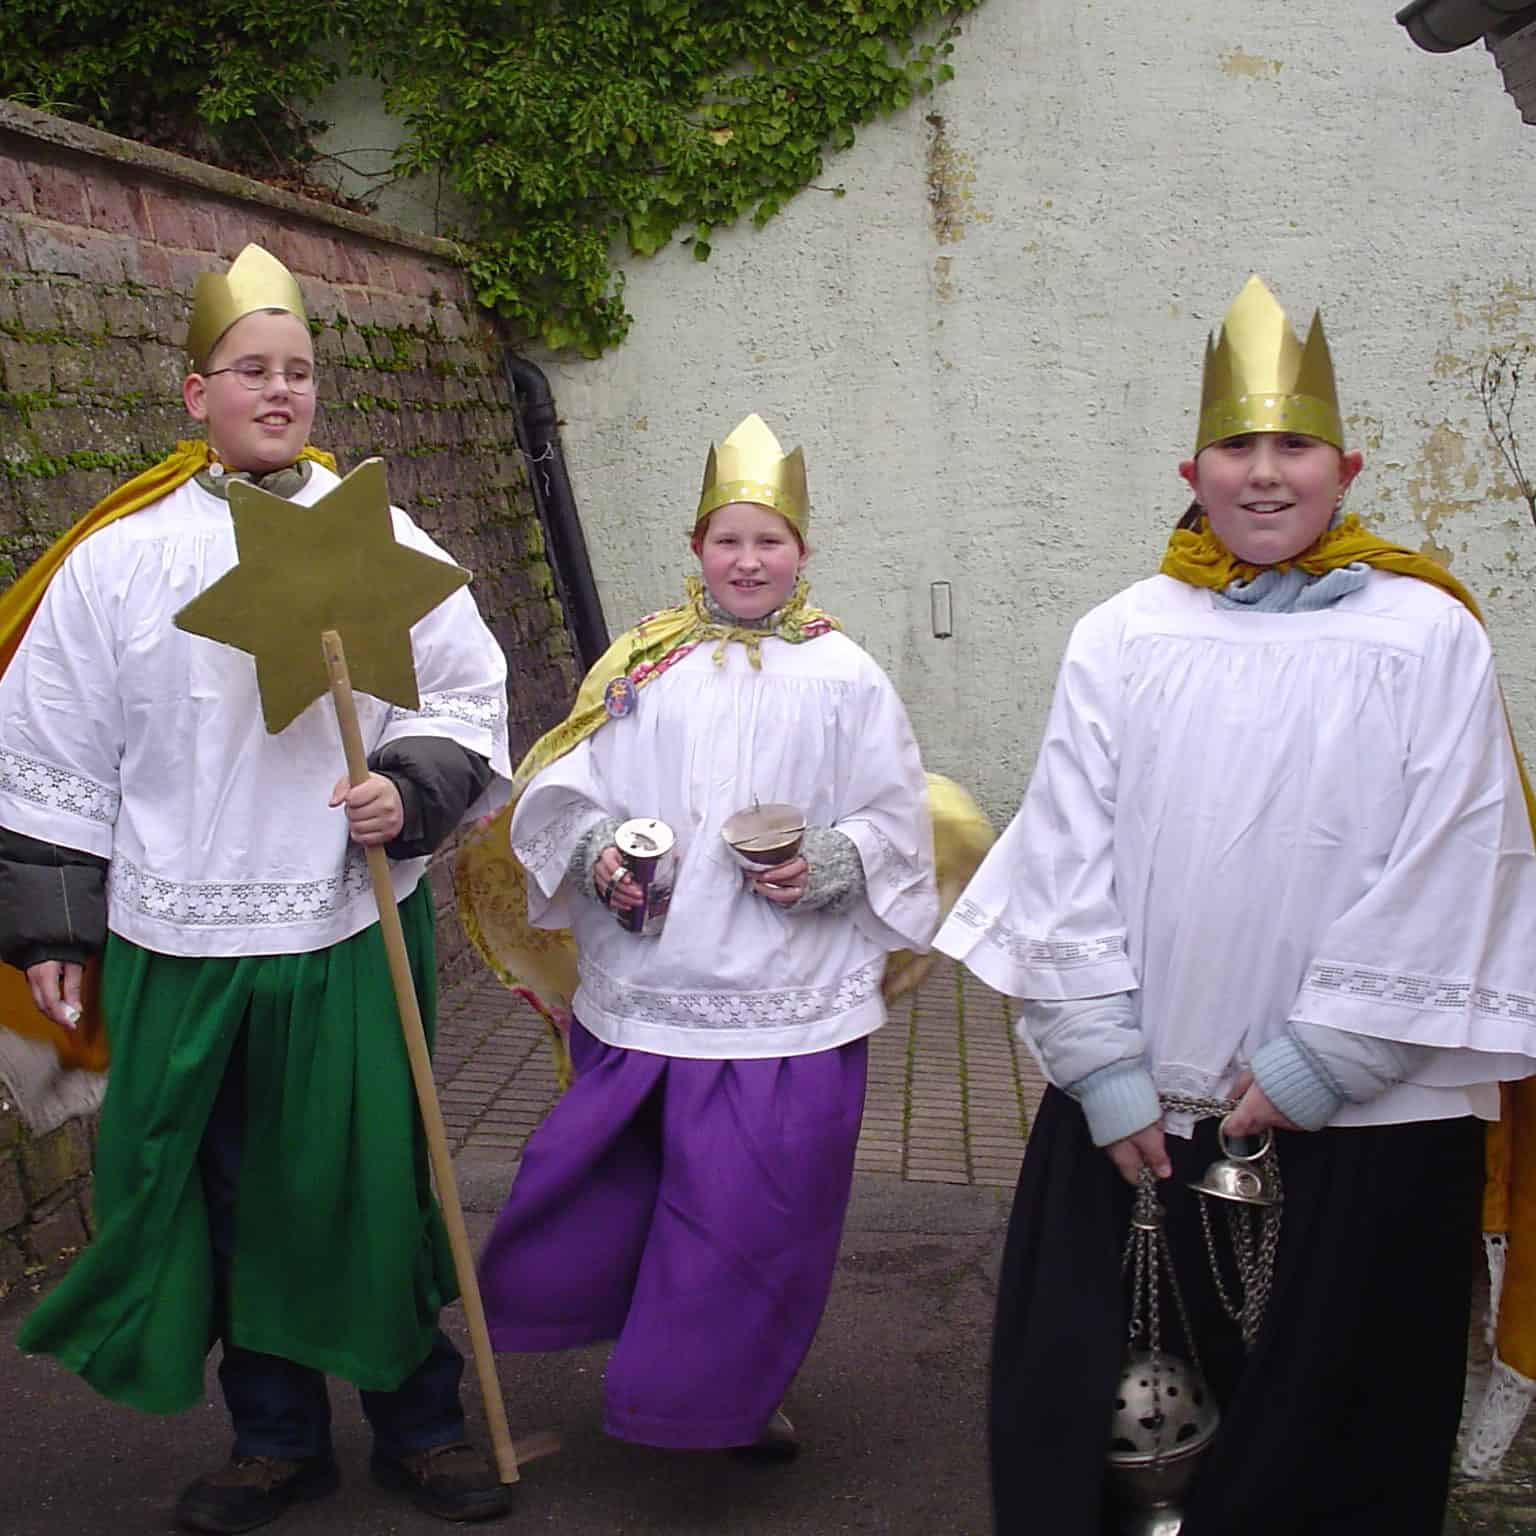 three children in colorful robes, white shirts, and gold crowns in a play of the three kinds for Epiphany